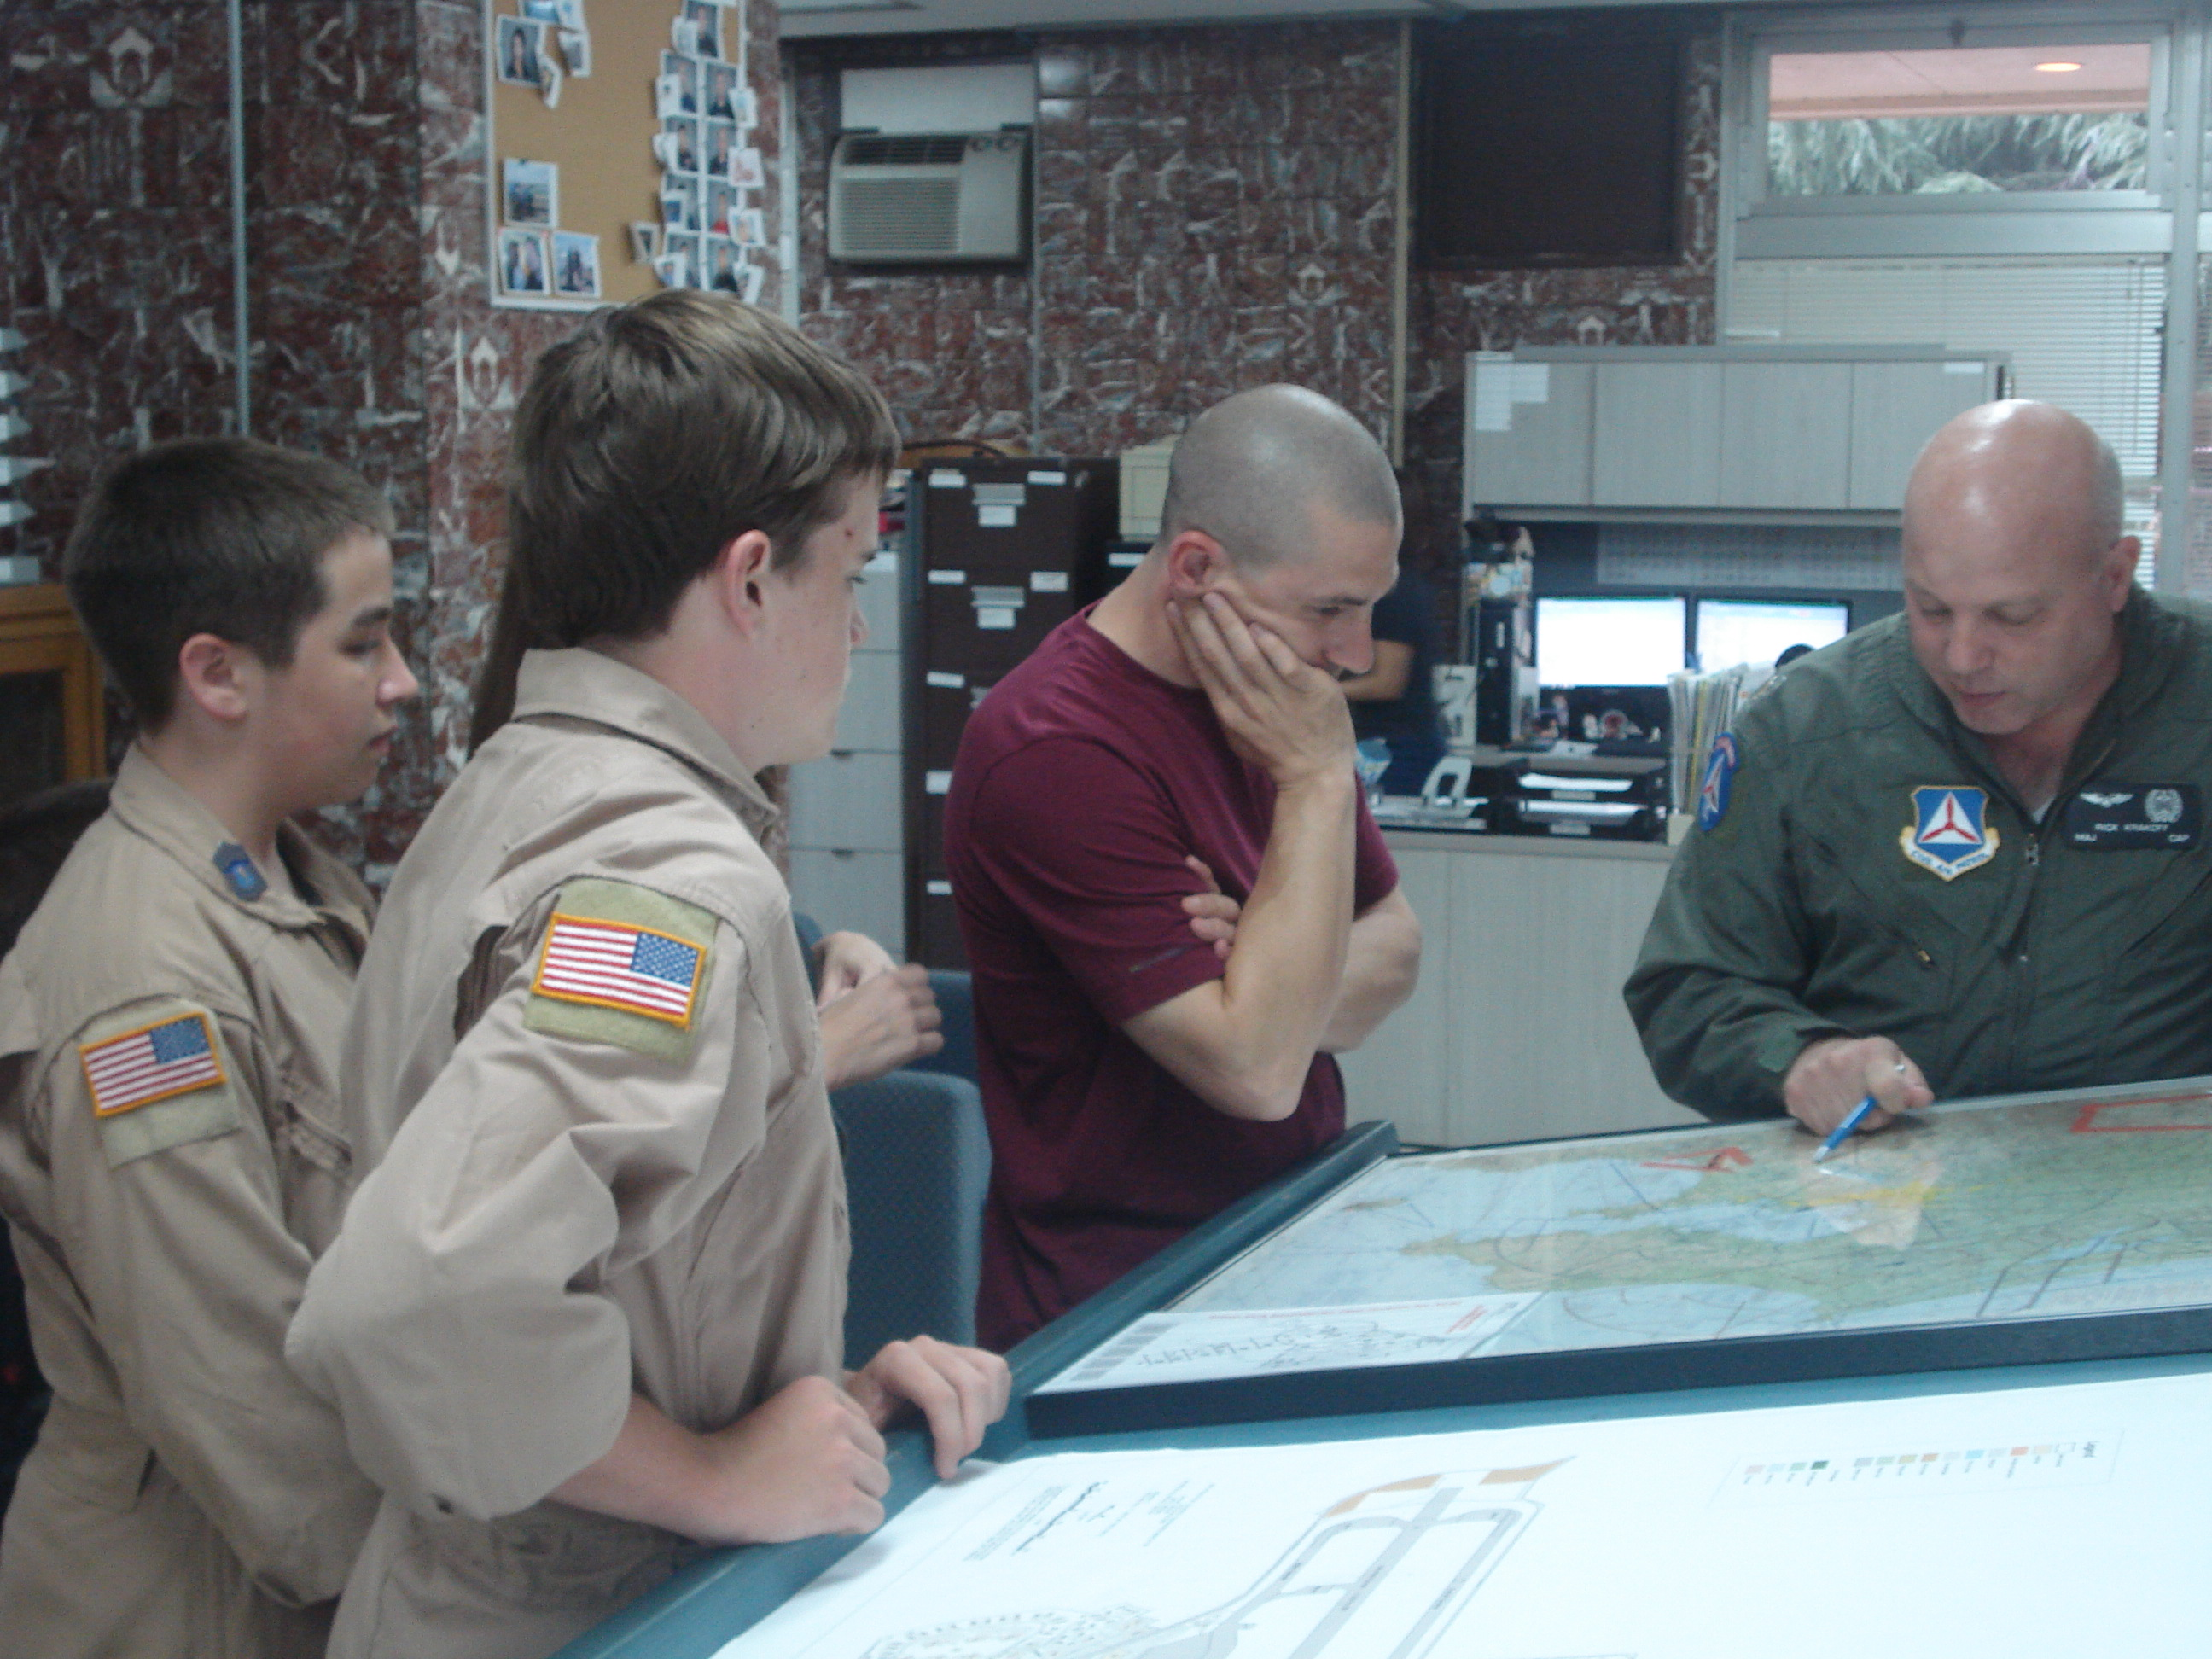 Maj Krakoff briefing the mission profile to the cadets